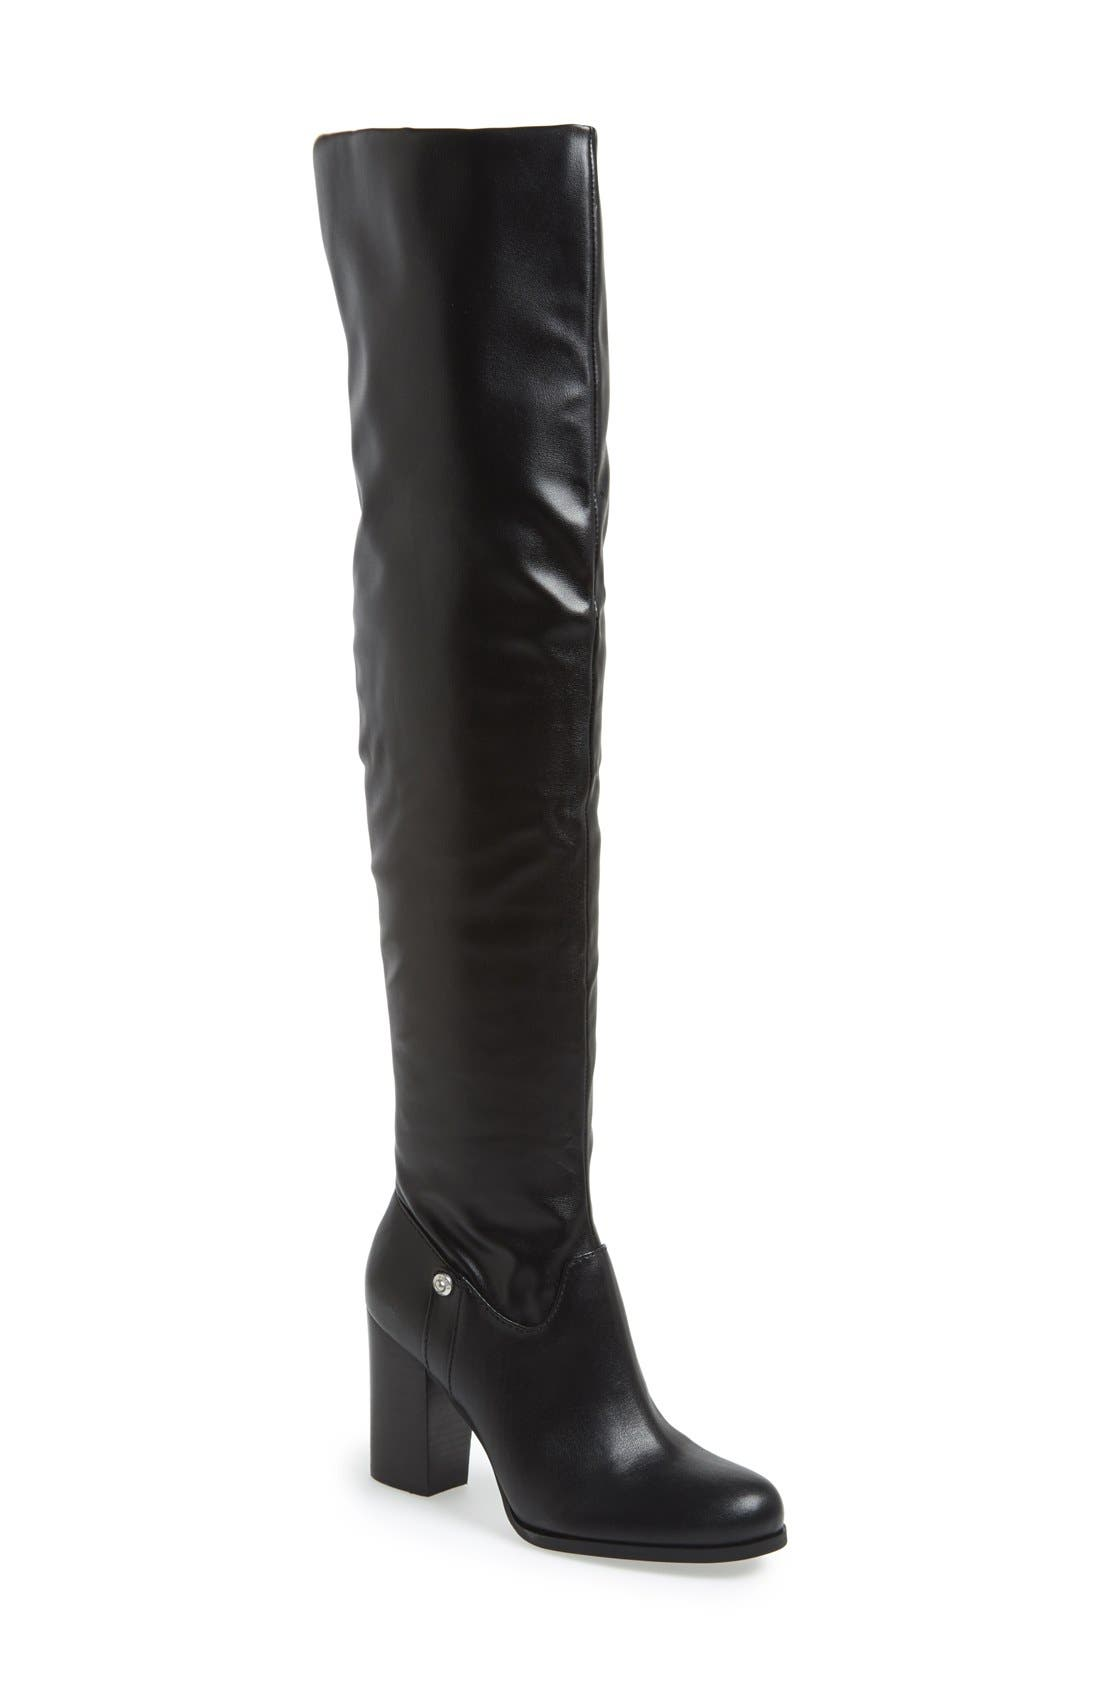 Alternate Image 1 Selected - GUESS 'Dandra' Foldable Over the Knee Boot (Women)